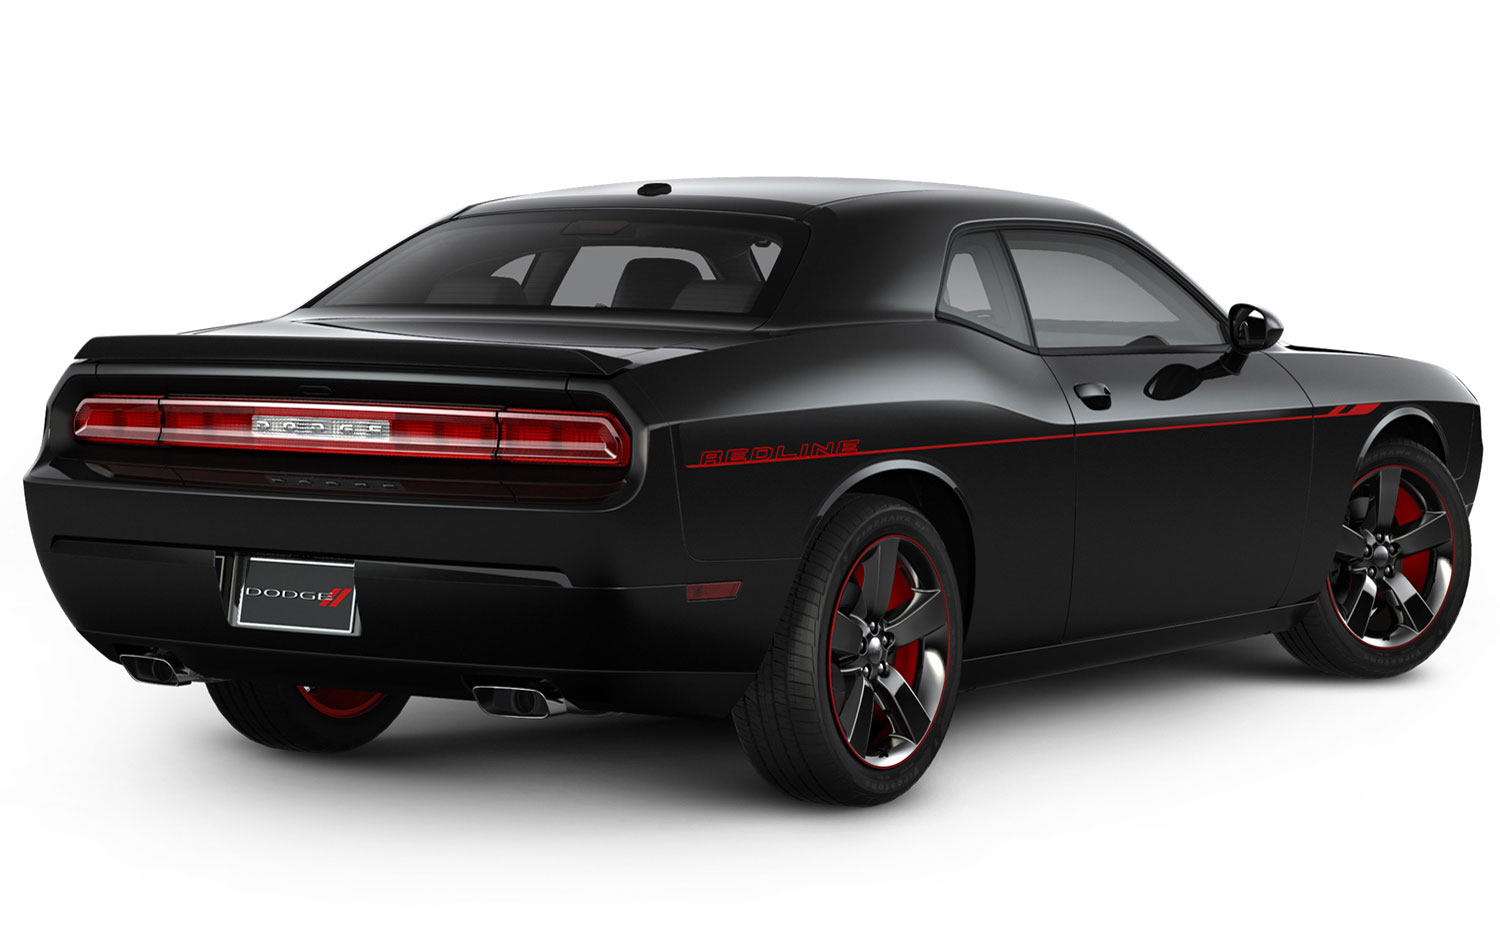 white on black dodge challenger - car insurance info